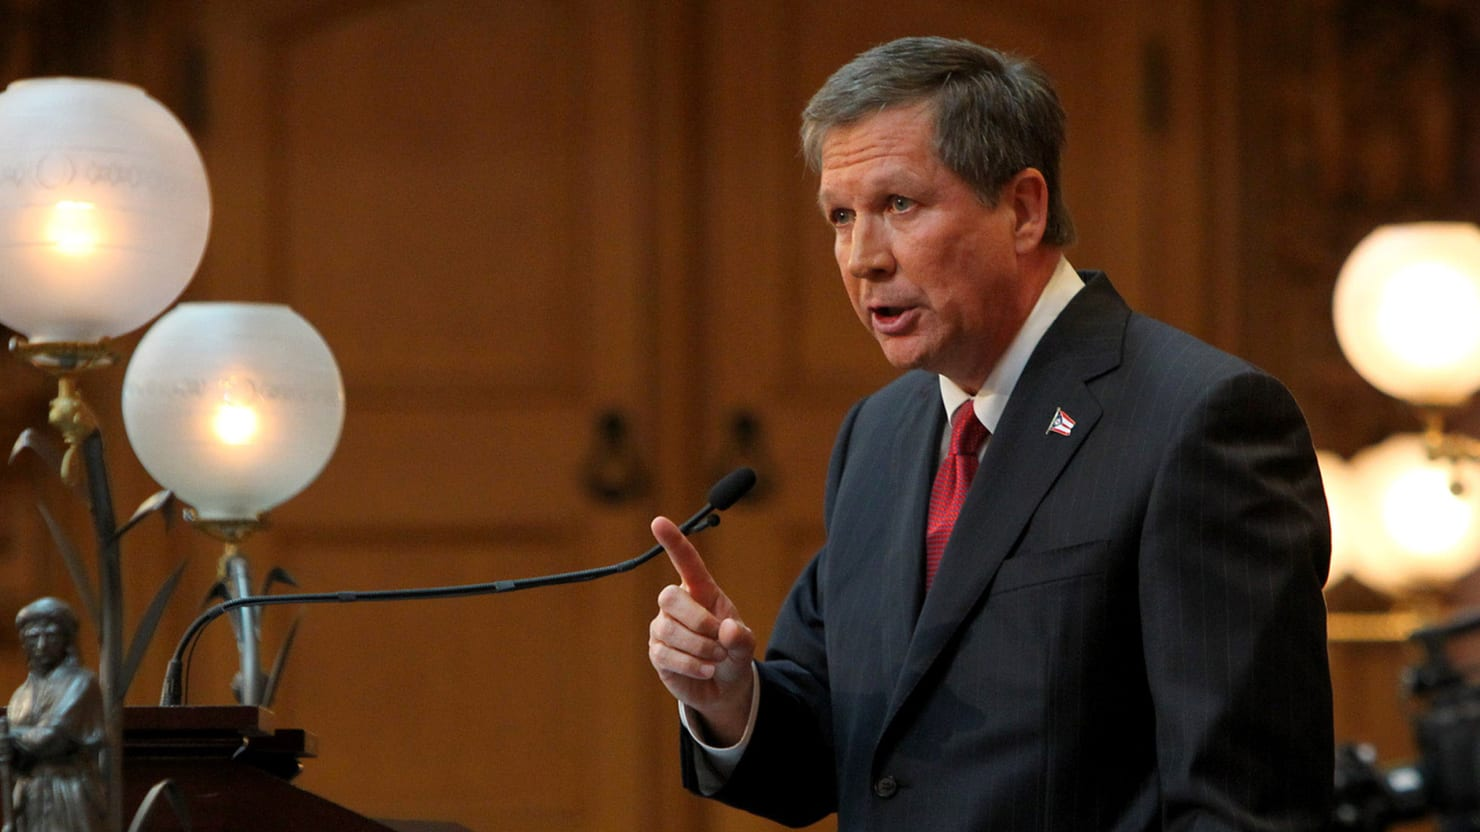 Is John Kasich The Most Formidable 2016 GOP Candidate You Don't Know?